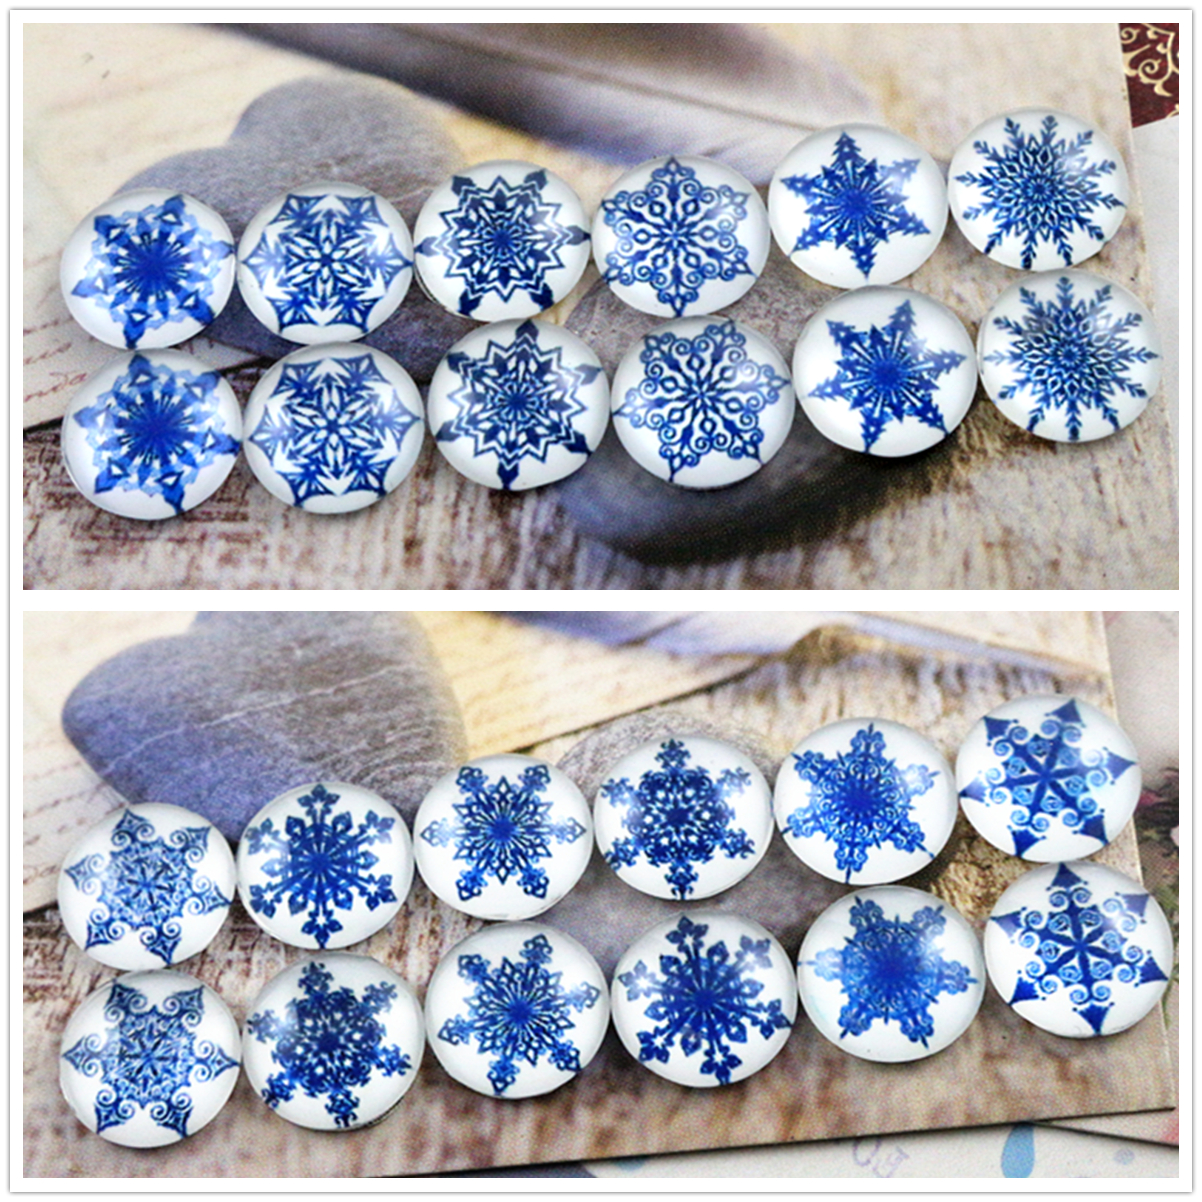 12pcs/lot (One Set) Two Style 12mm Blue Snowflakes Handmade Glass Cabochons Pattern Domed Jewelry Accessories Supplies 12pcs lot one set two style 12mm blue snowflakes handmade glass cabochons pattern domed jewelry accessories supplies